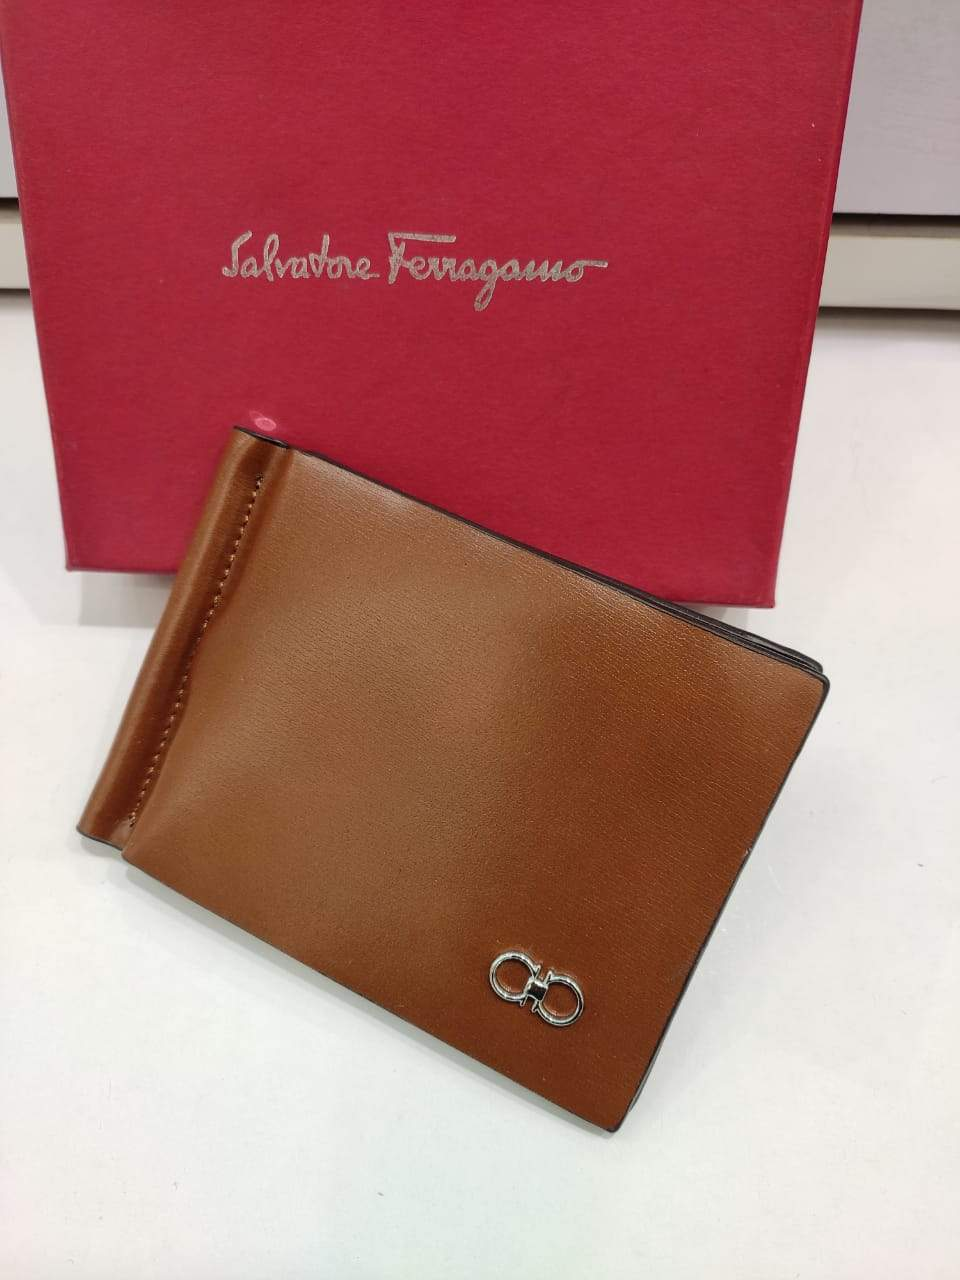 Salvatore Ferragamo Clipper